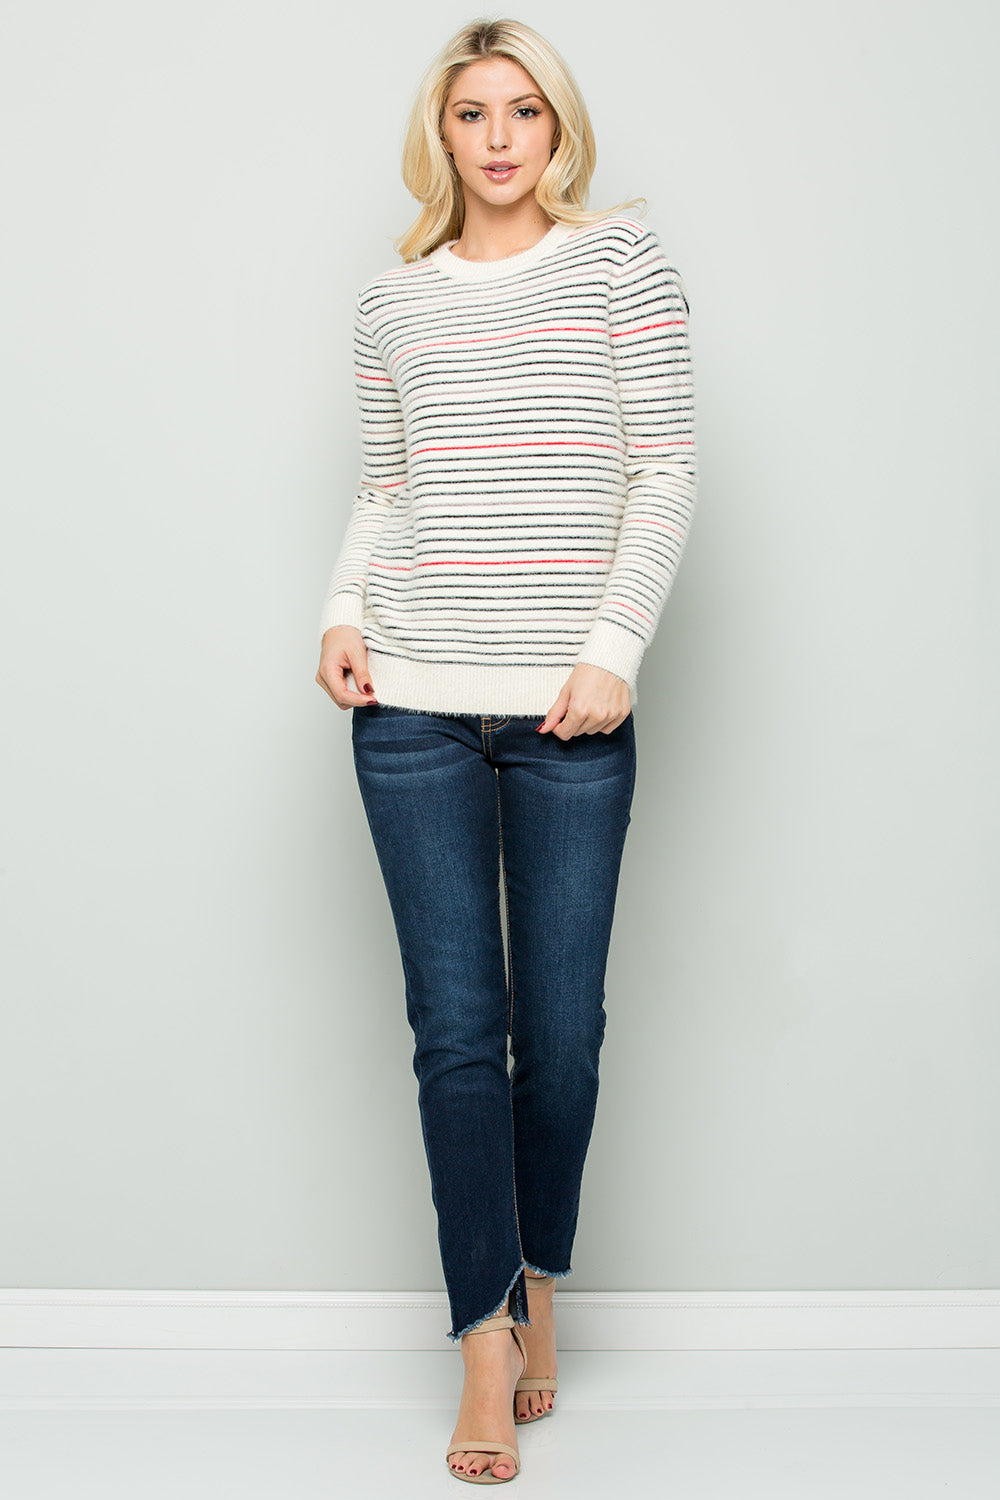 SW6060 Striped Soft Touch Sweater